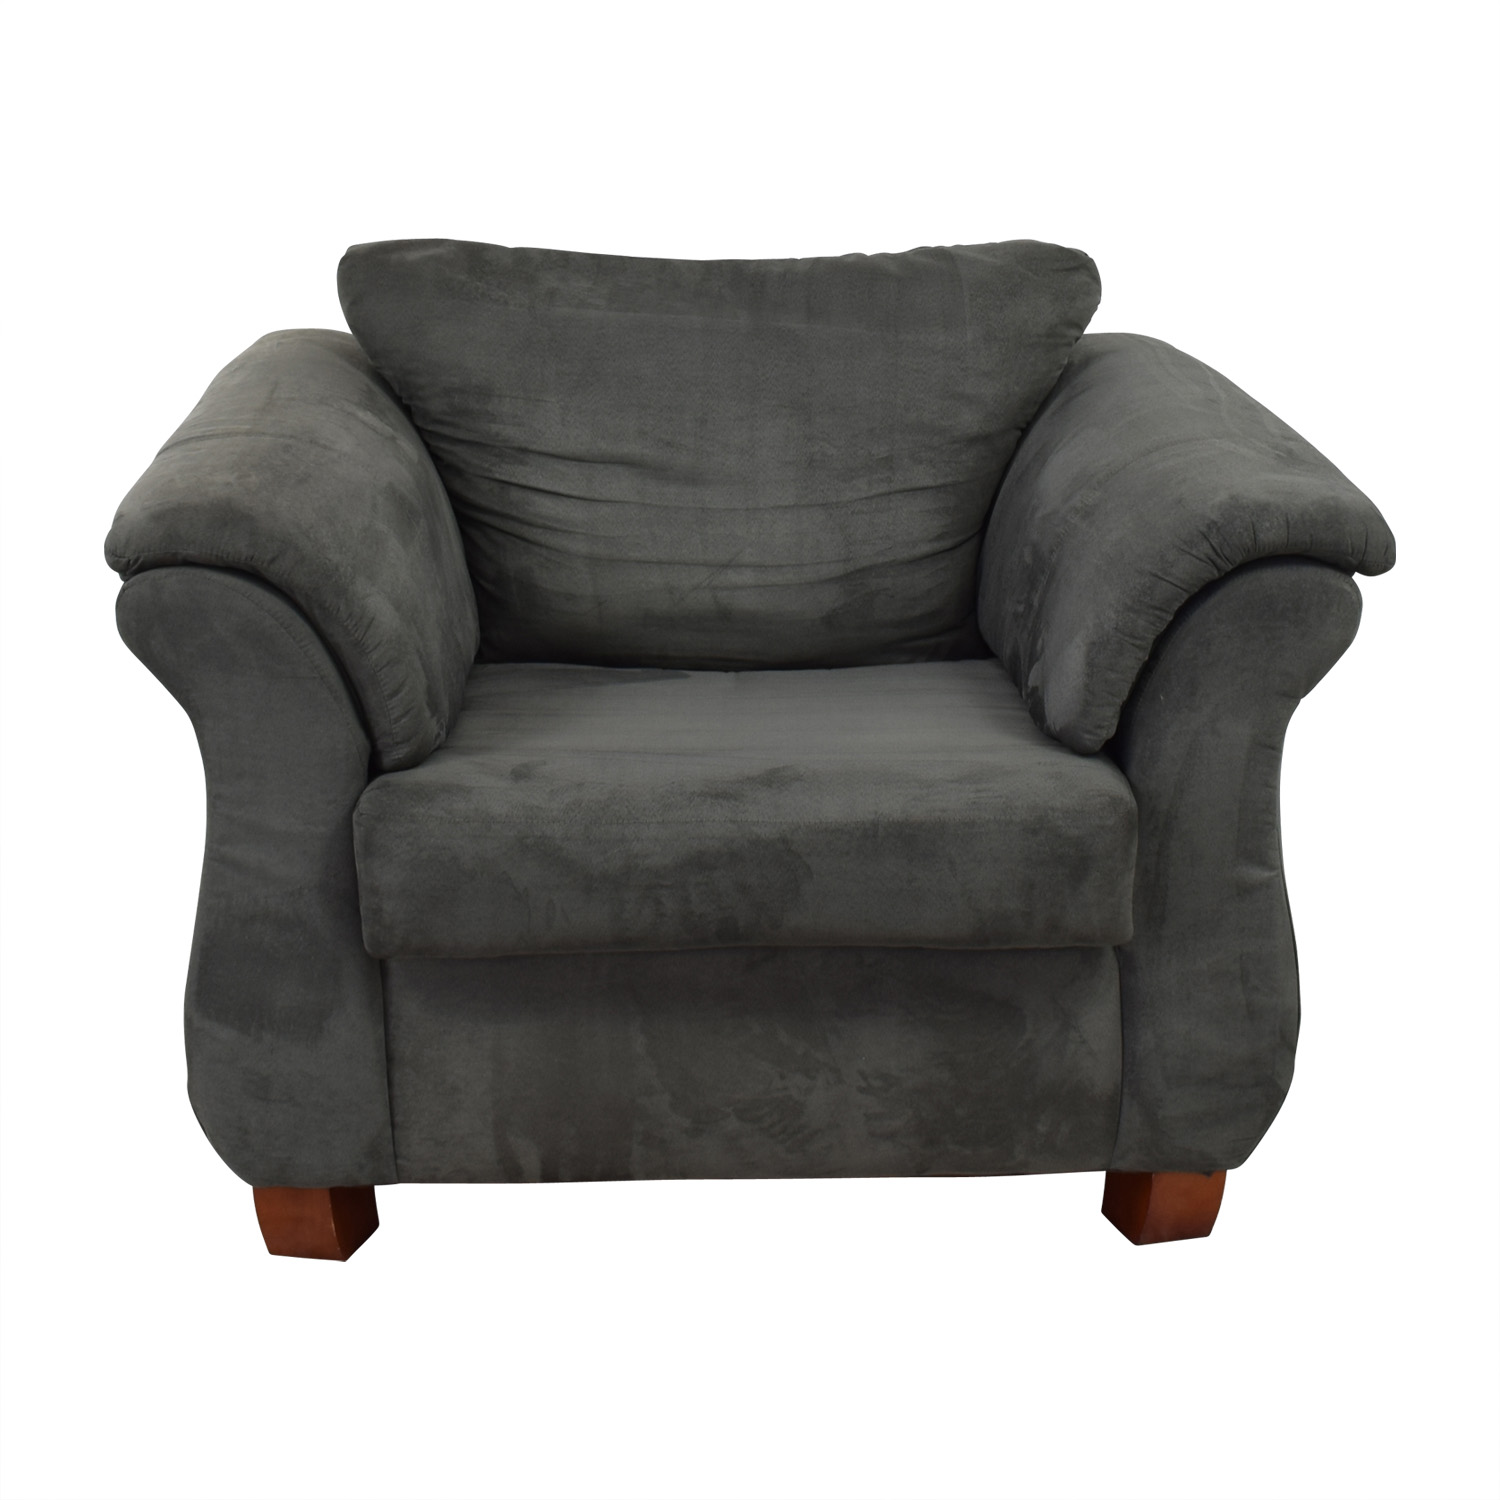 Value City Furniture Grey Loveseat Accent Chair Loveseats